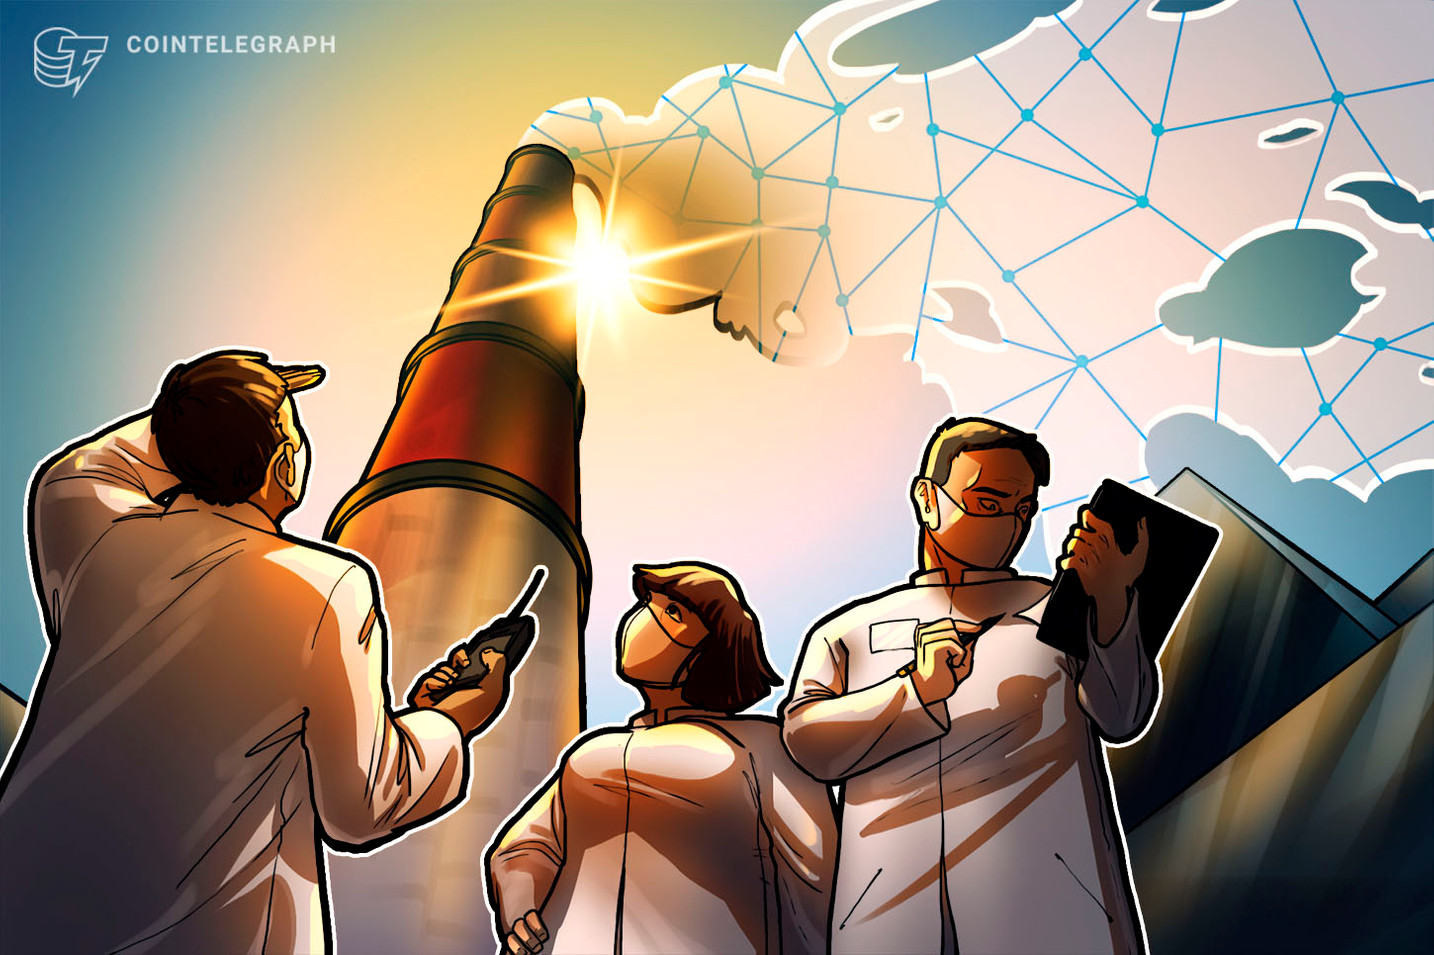 WEF tests tracking carbon emissions with blockchain technology